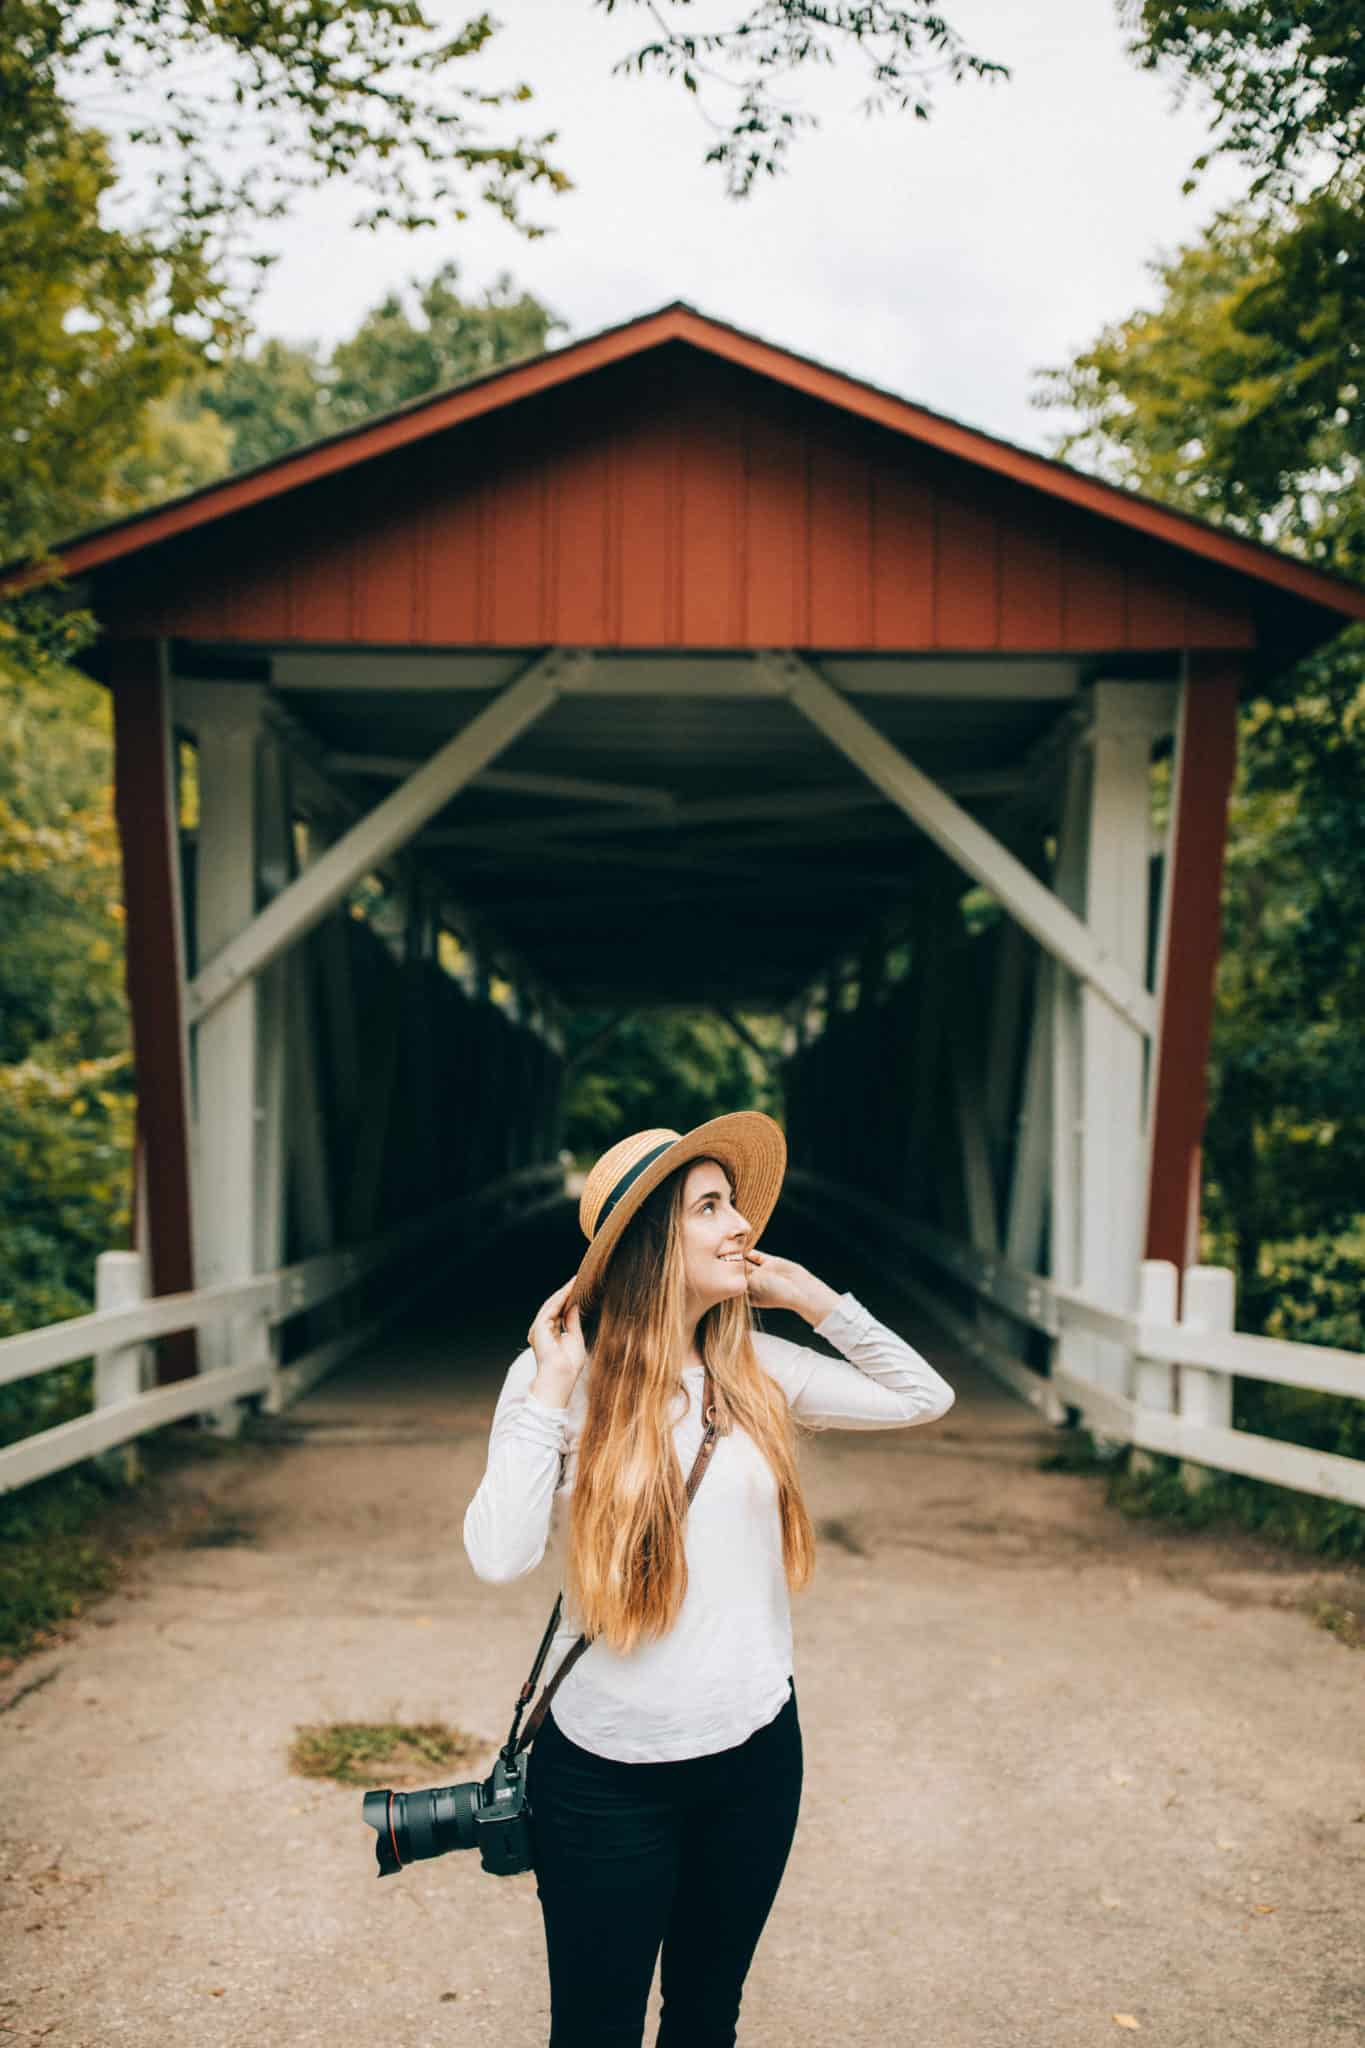 Everett Road Covered Bridge - Cuyahoga Valley National Park - TheMandagies.com